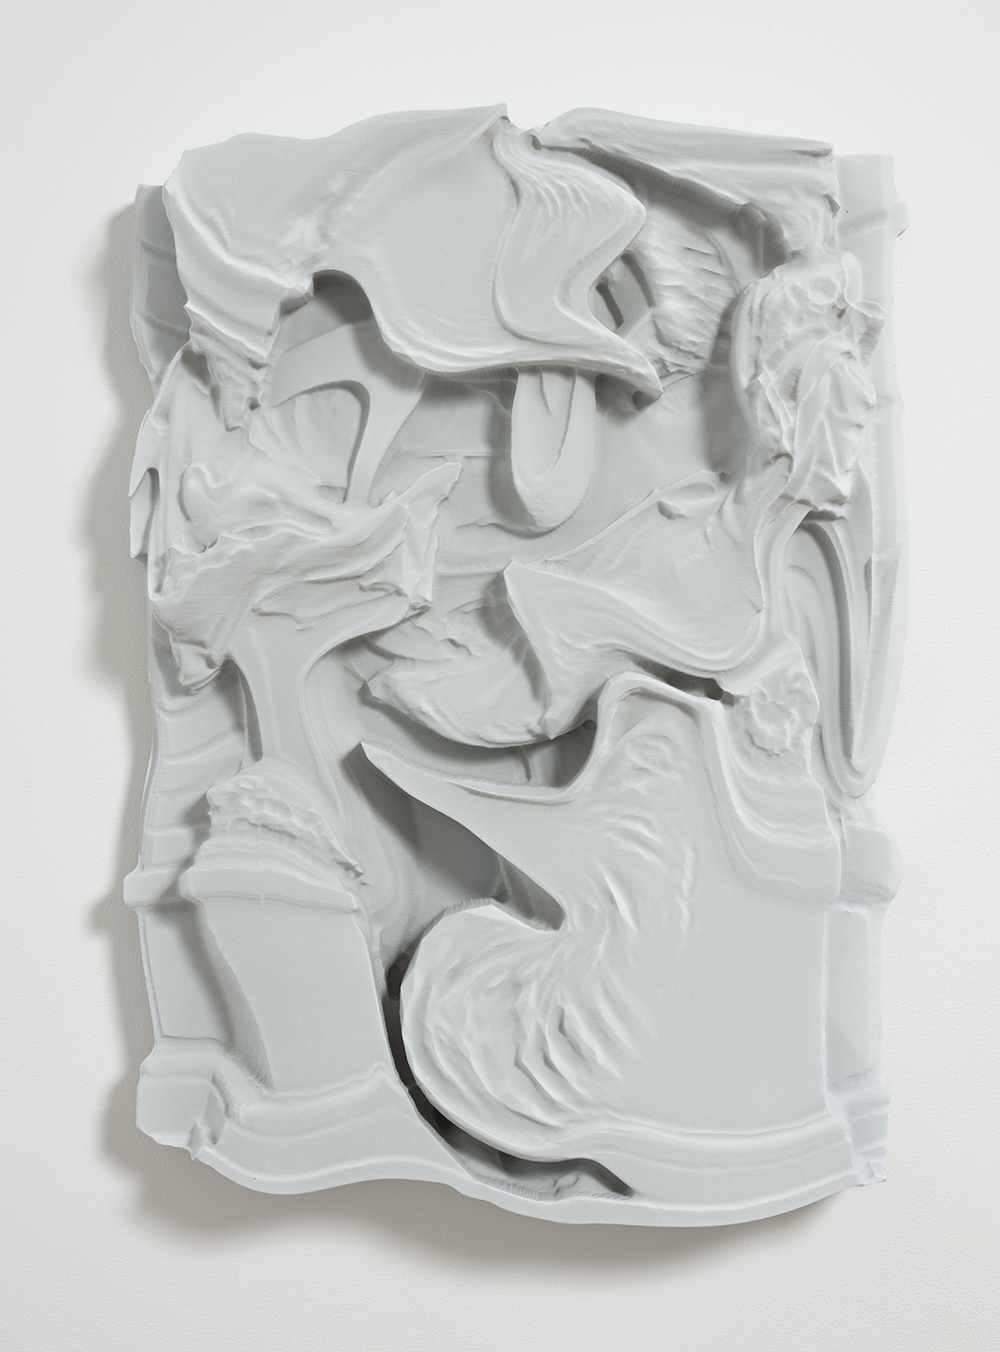 Michael Staniak. <em>OBJ_394</em>, 2017. Polyurethane resin and acrylic, 27 x 20 x 4 inches